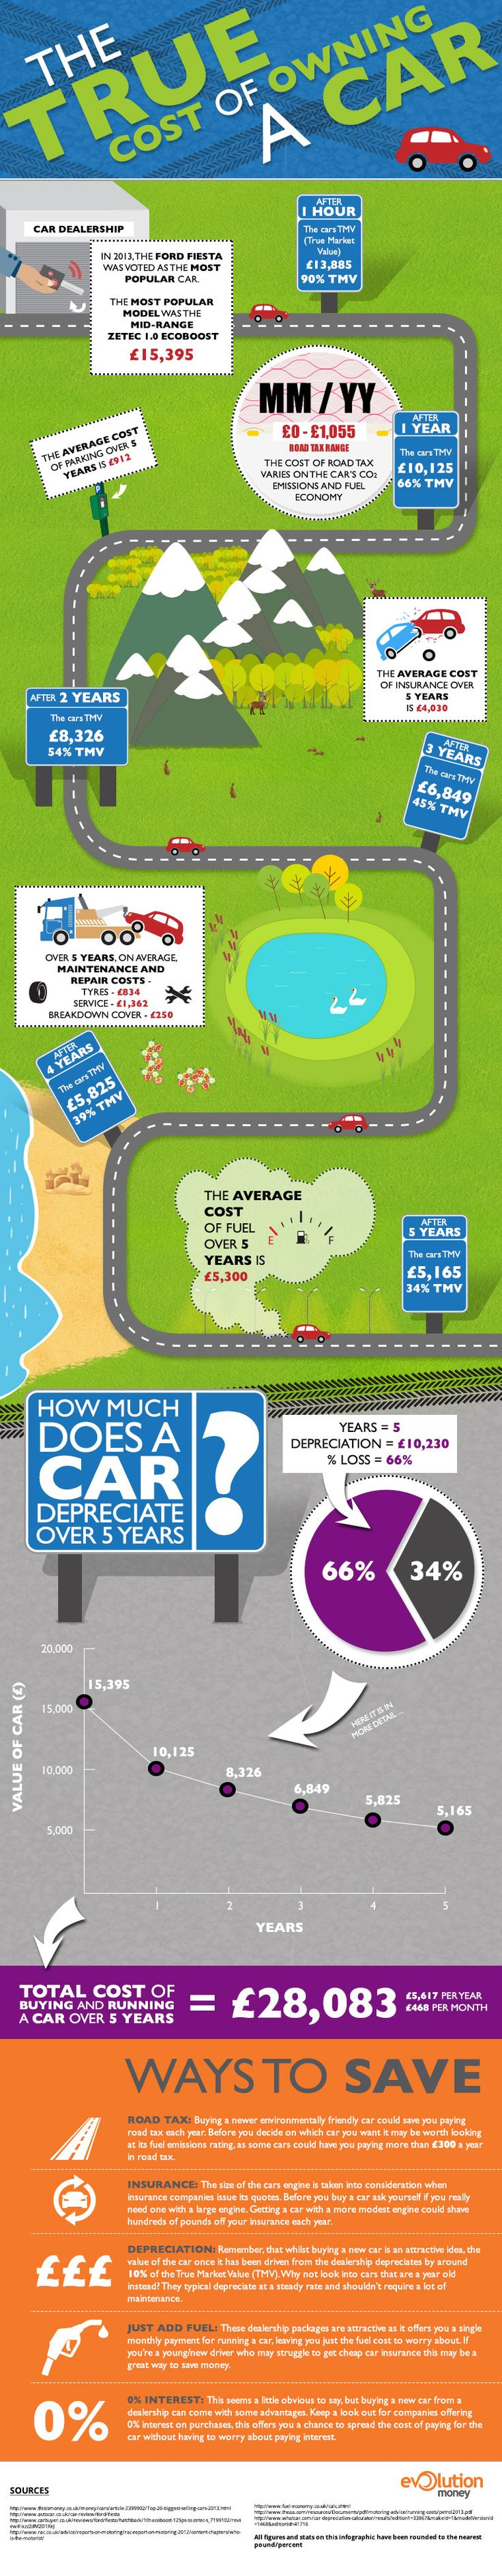 For our u k friends here s a look at the true cost of car ownership over